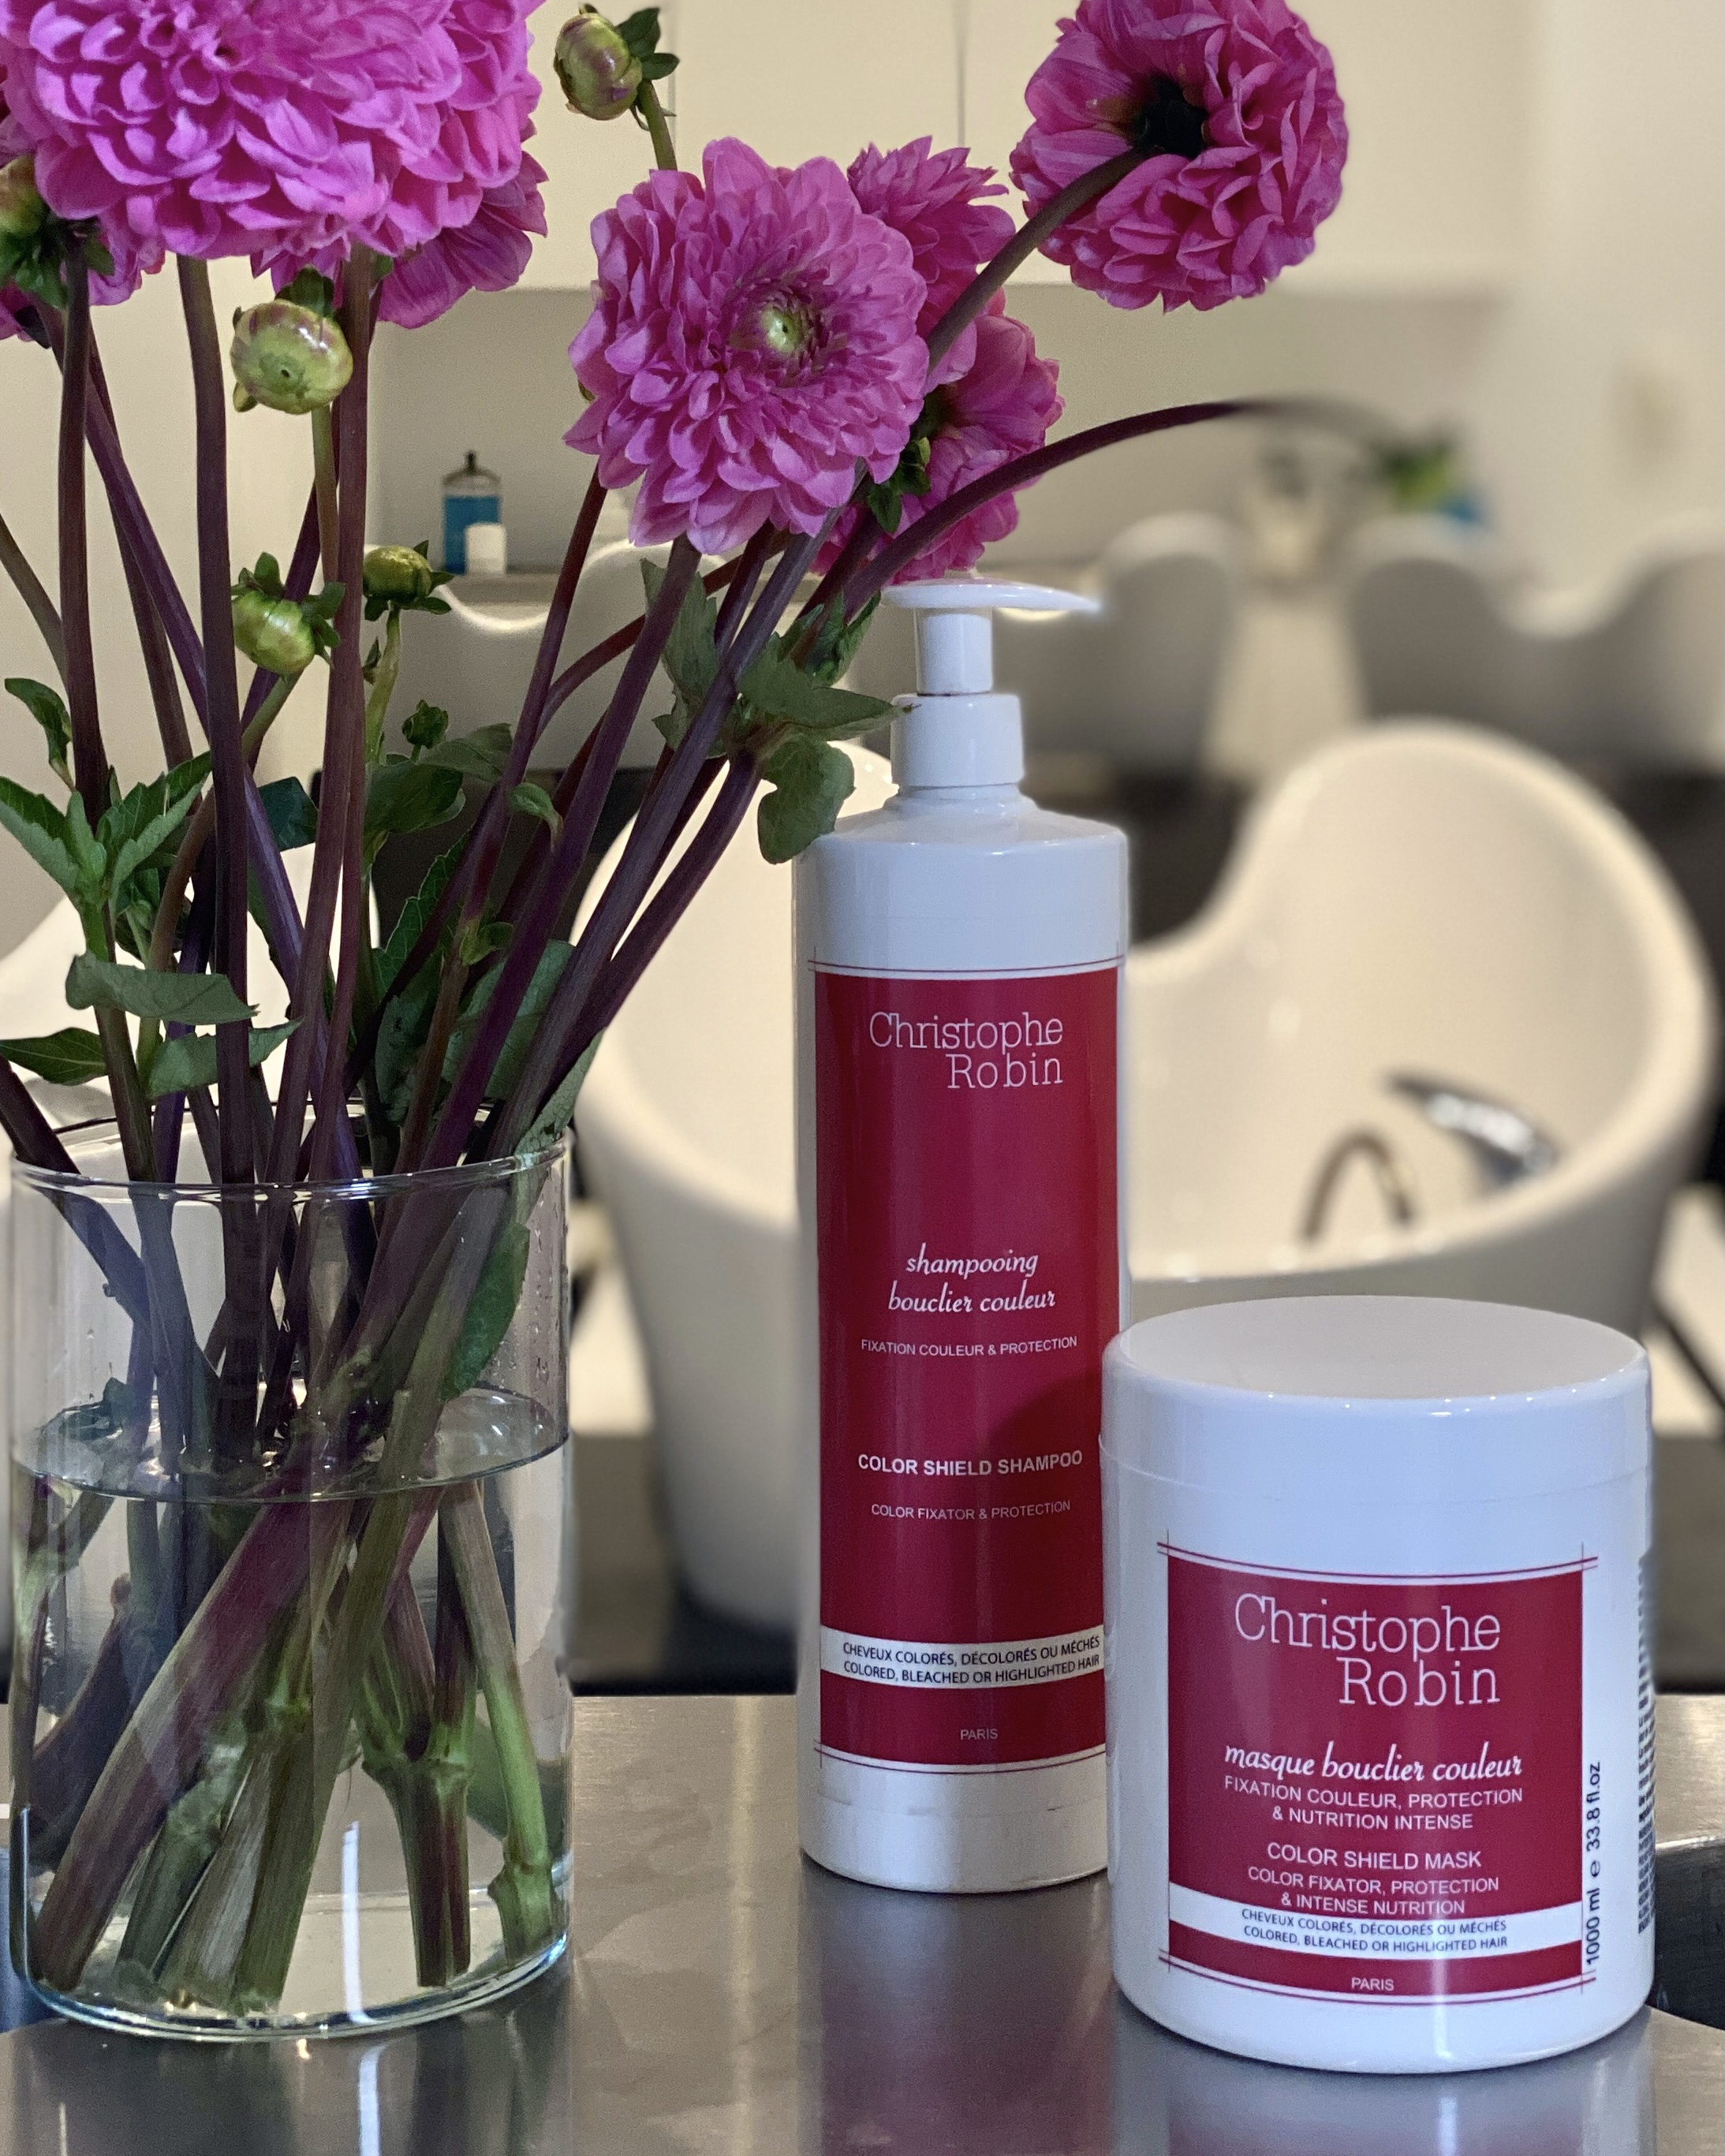 Color-Loving, Sensual, Luxurious And Effortlessly French: Christophe Robin Hair Care Is Better Than Ever